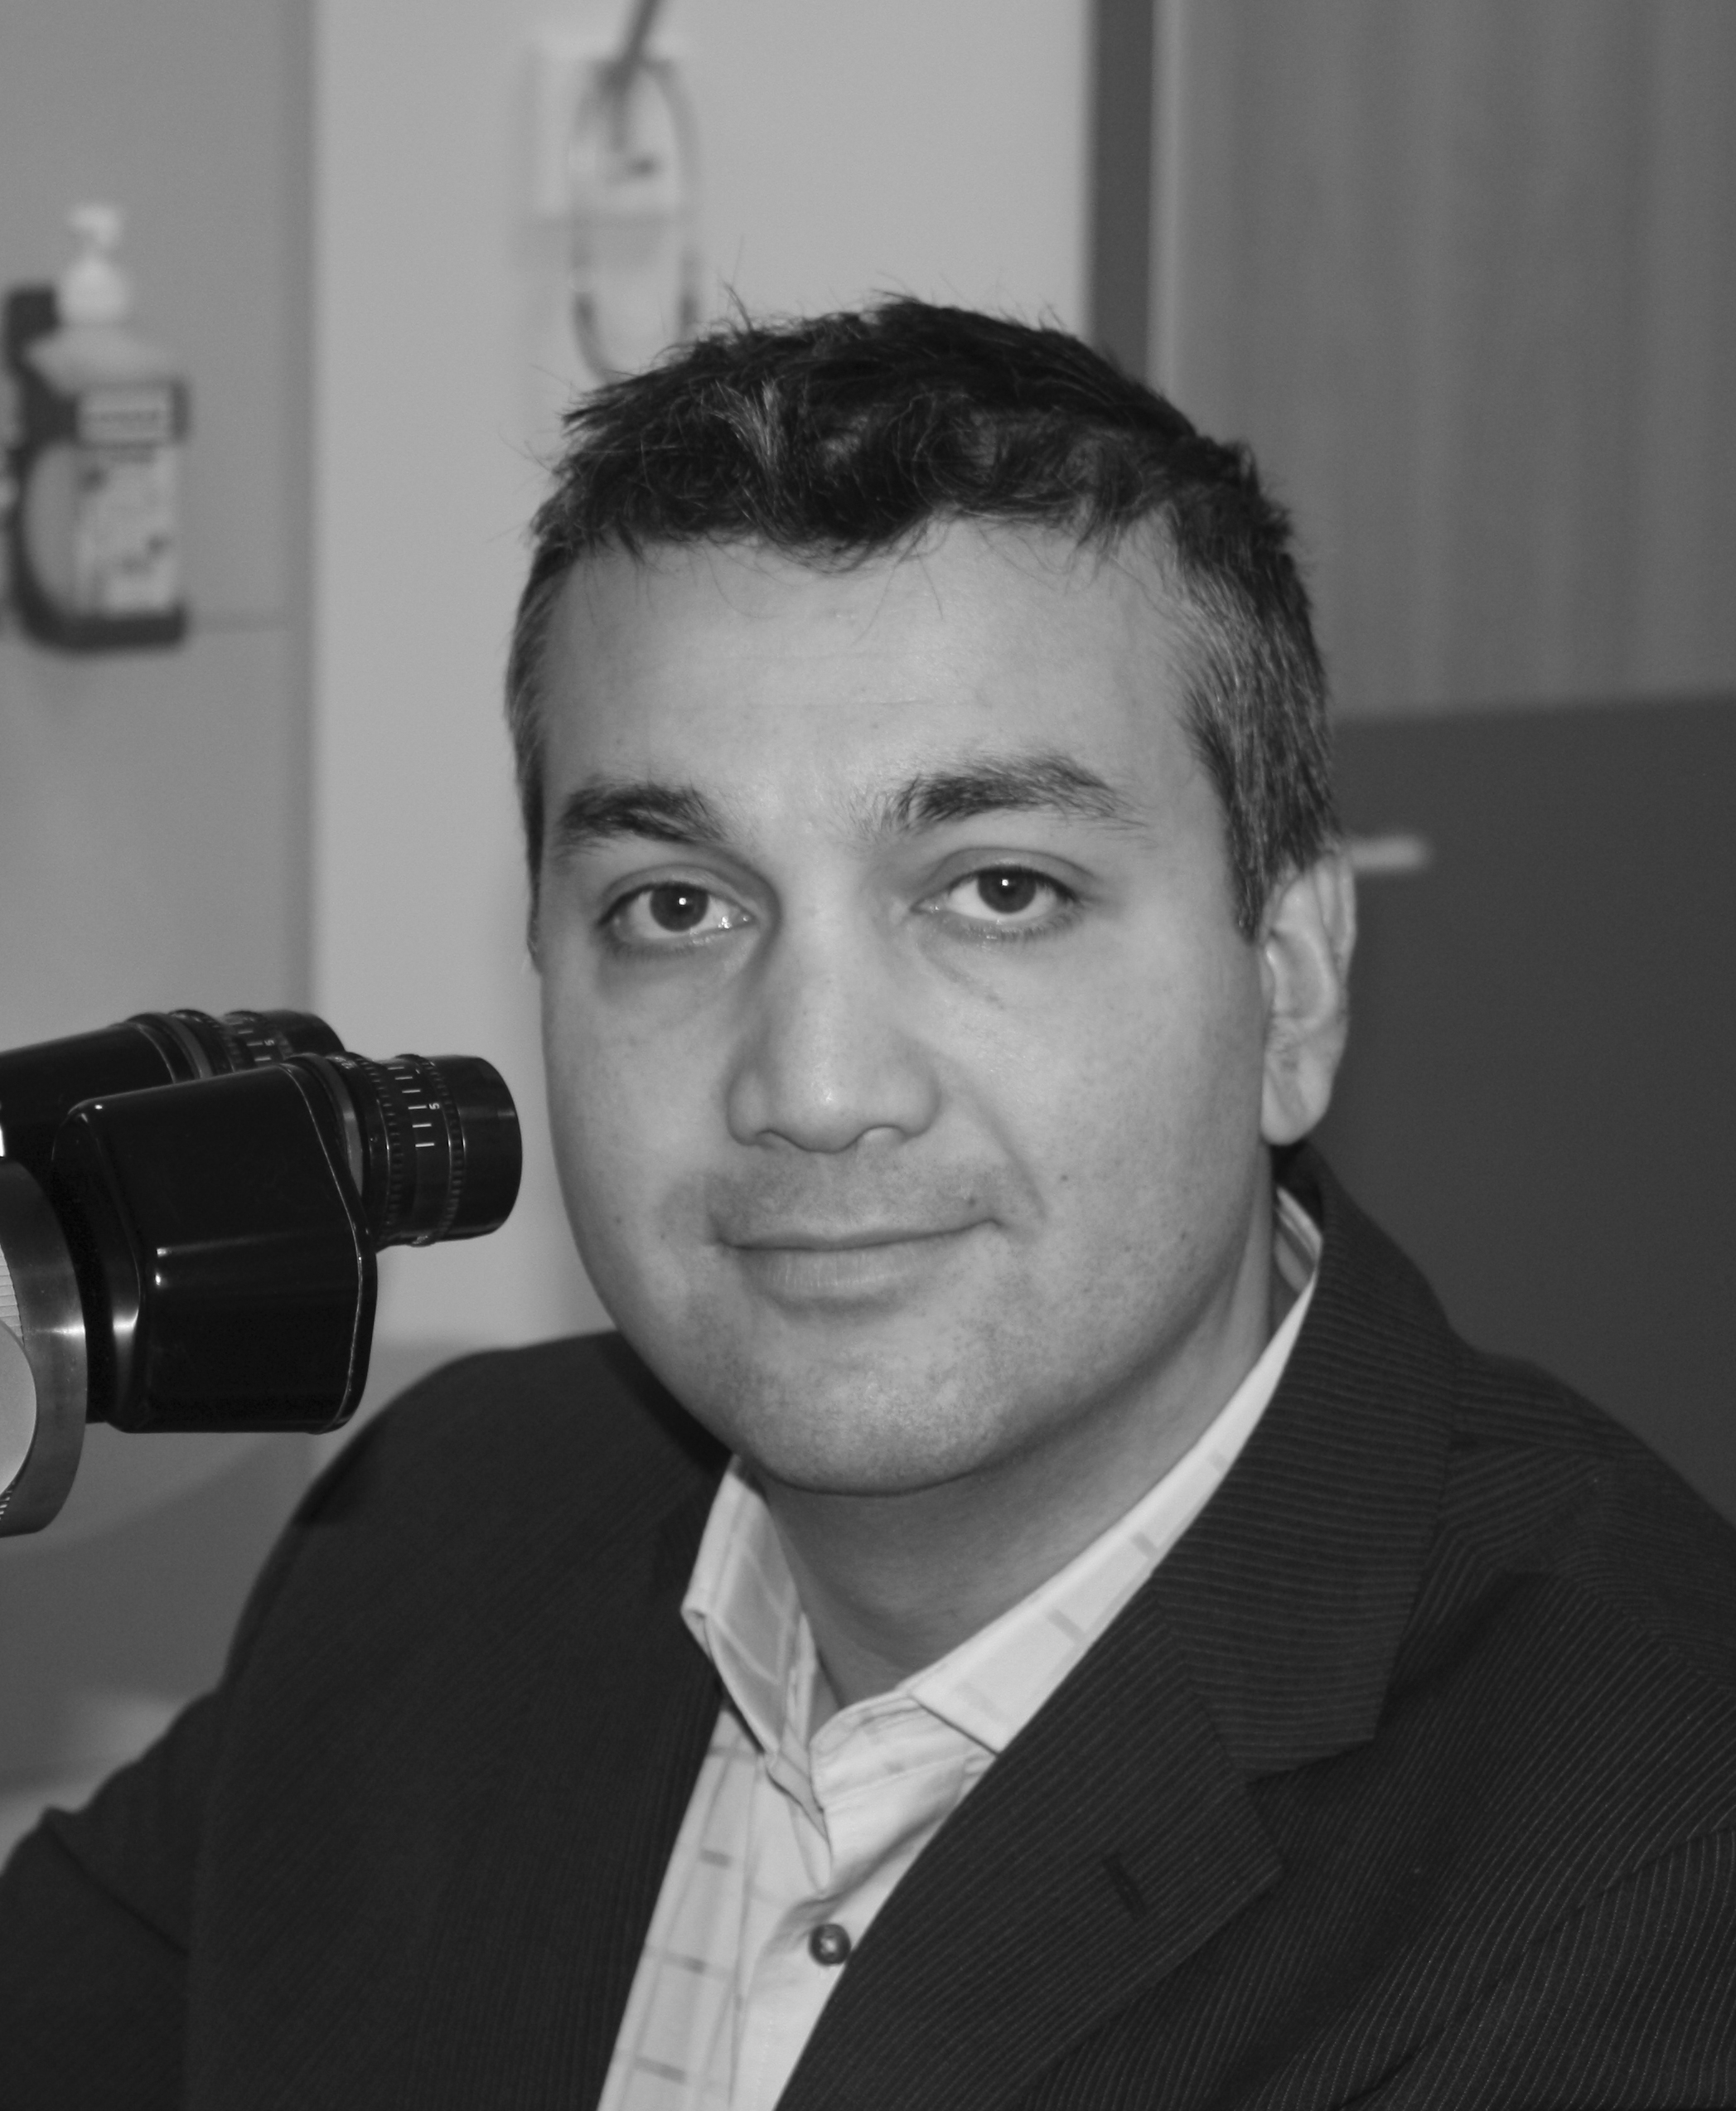 Amar Alwitry is a consultant Consultant Ophthalmologist at Circle Nottingham